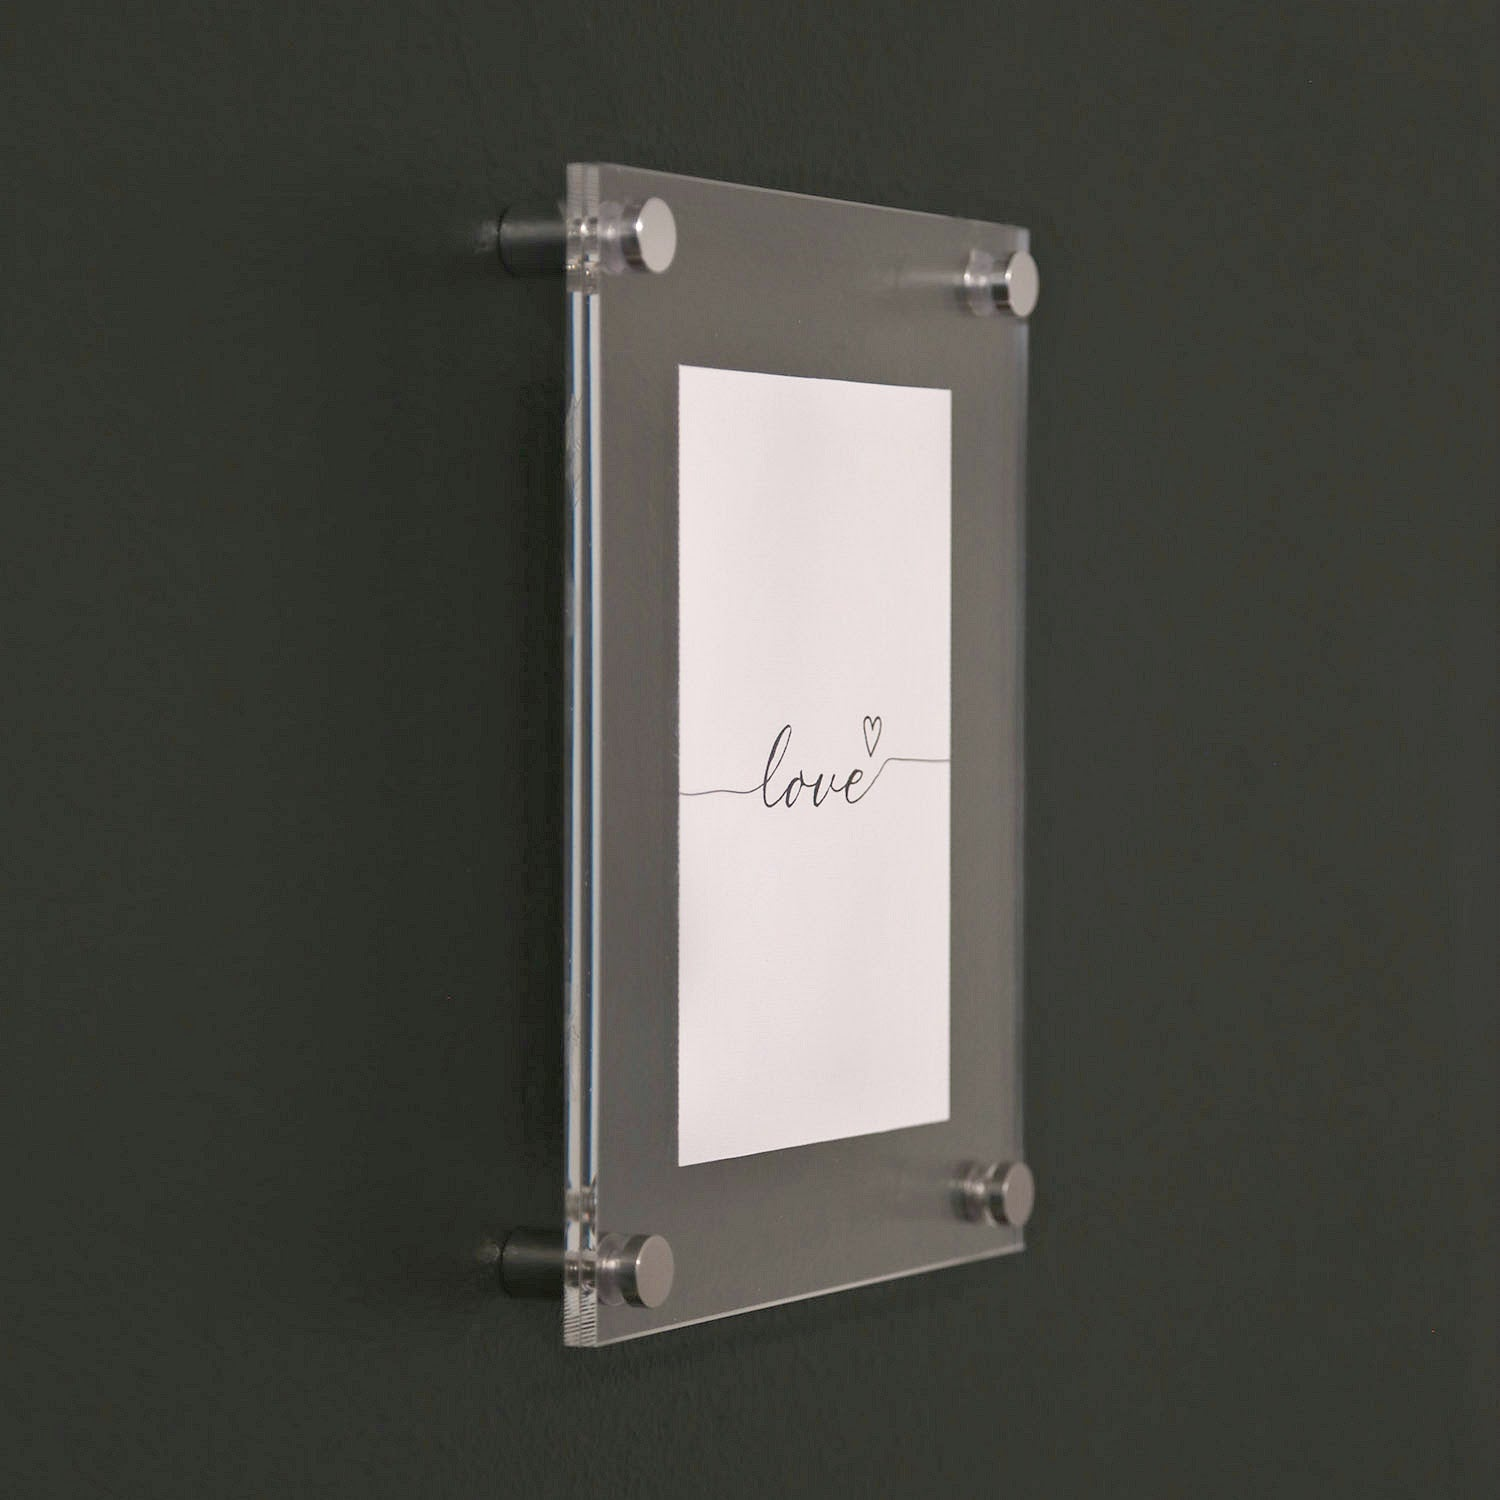 Acrylic Frame with Silver Standoff Bolts